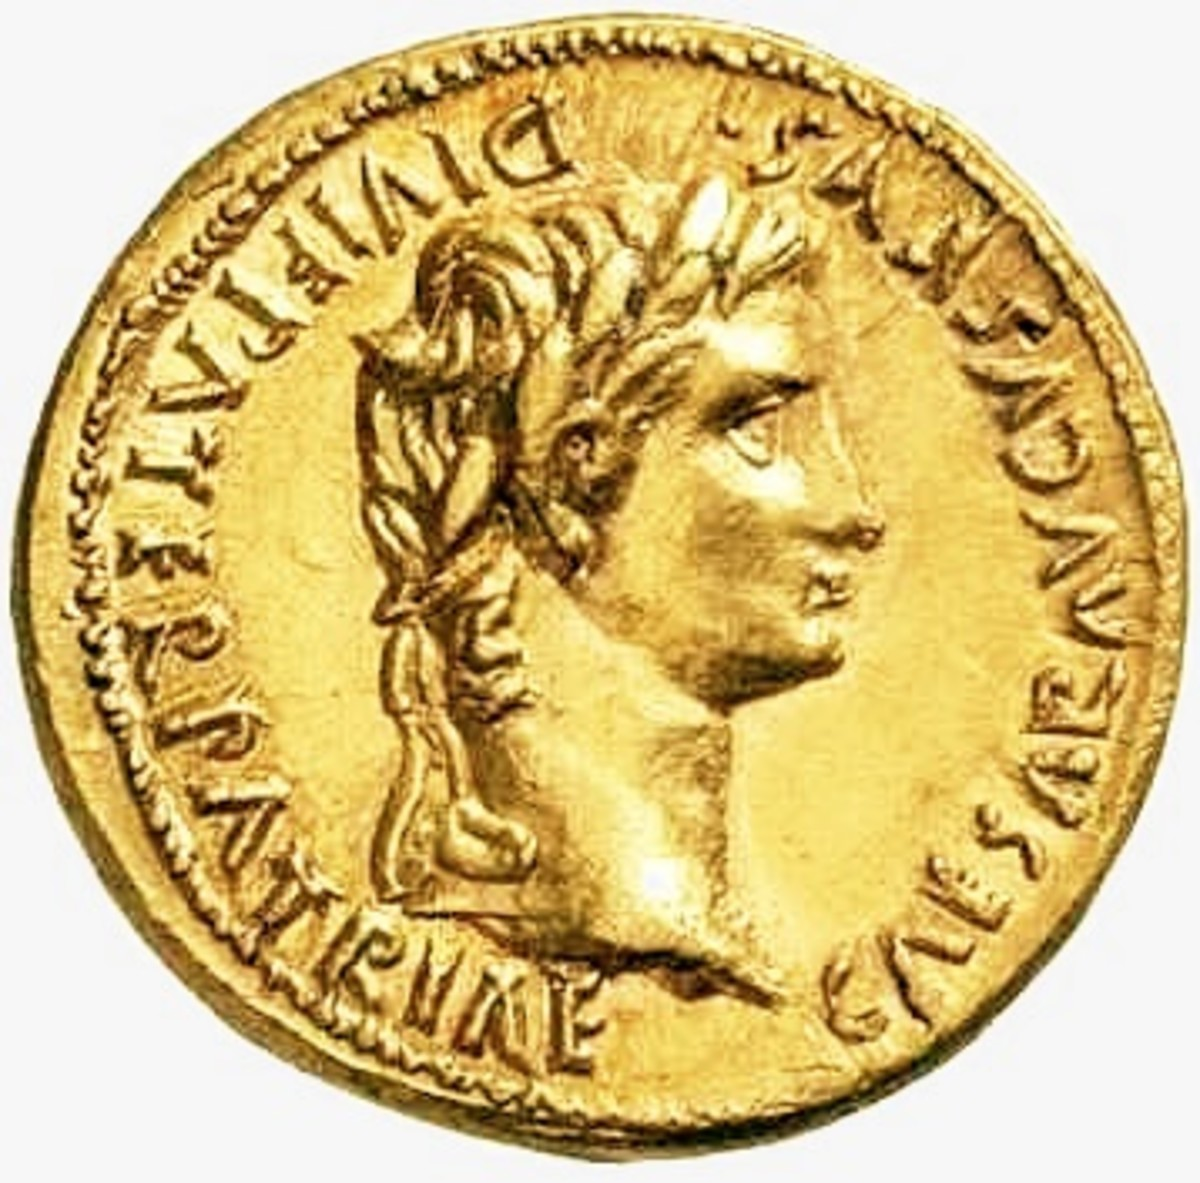 An aureus of Caesar Augustus, the first true Roman Emperor, who came to power in 27BC